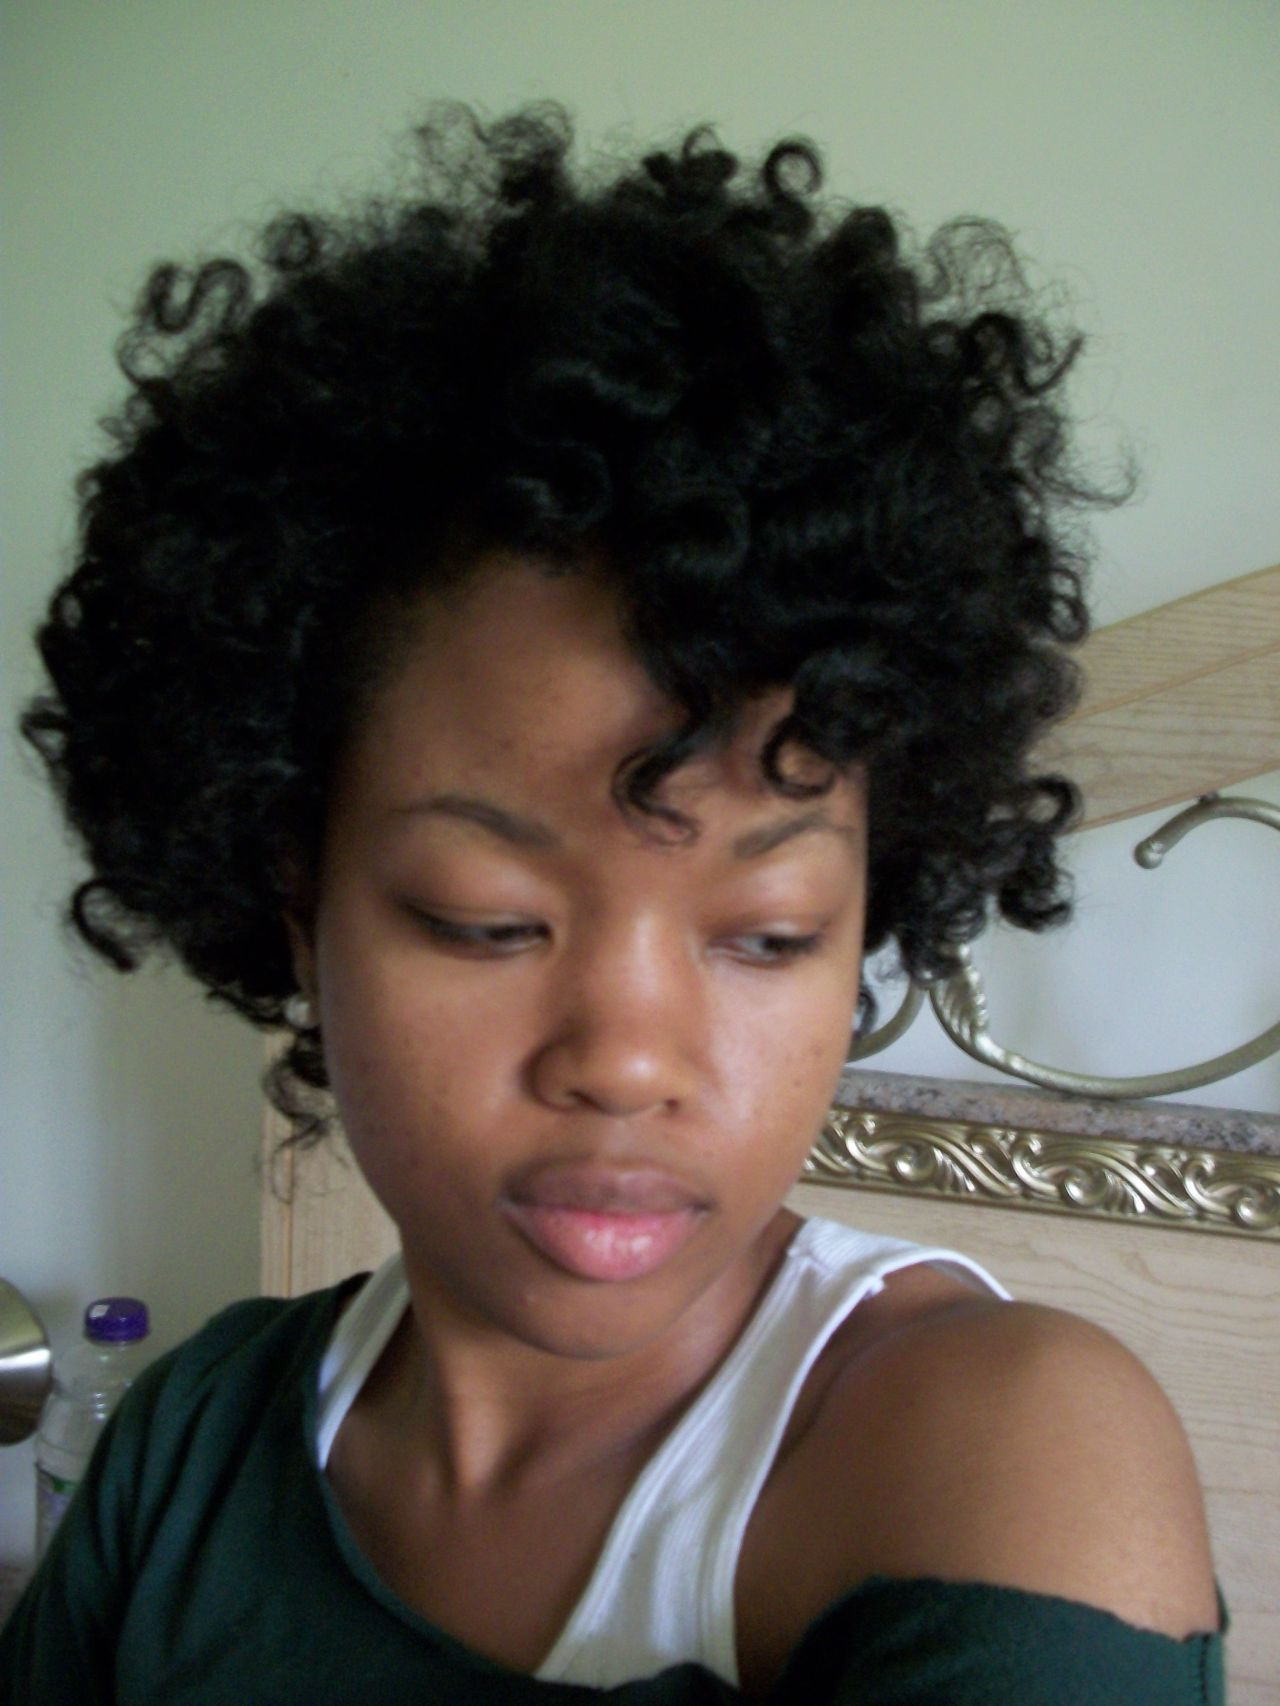 Short Curly Hairstyles For Black Women – Hairstyle For Black Women In Curly Short Hairstyles For Black Women (View 9 of 25)